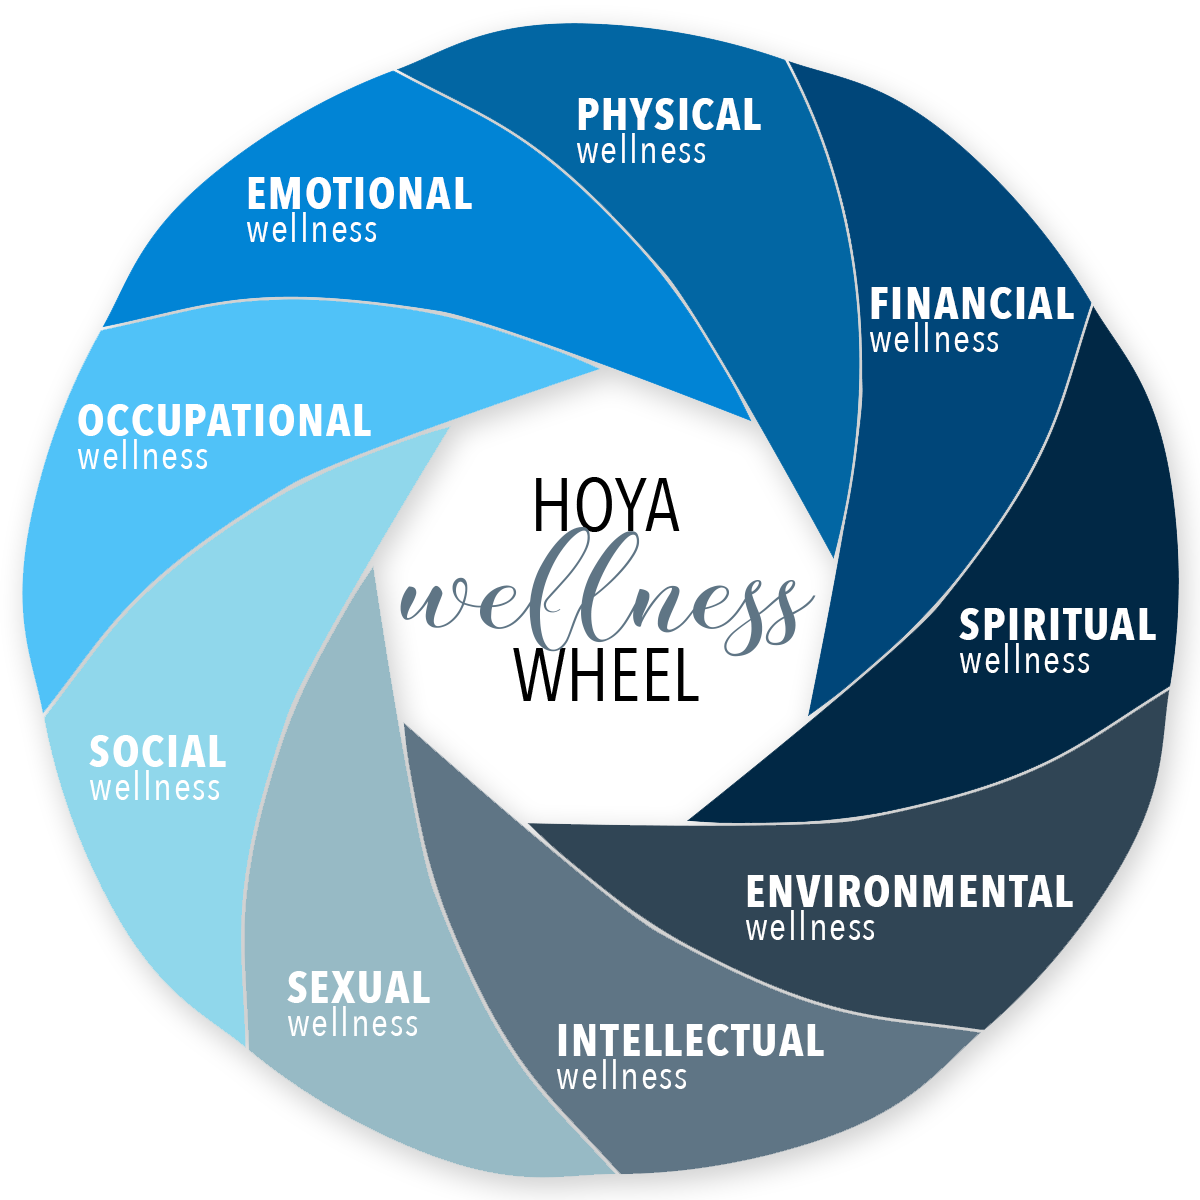 Hoya Wellness Wheel Graphic